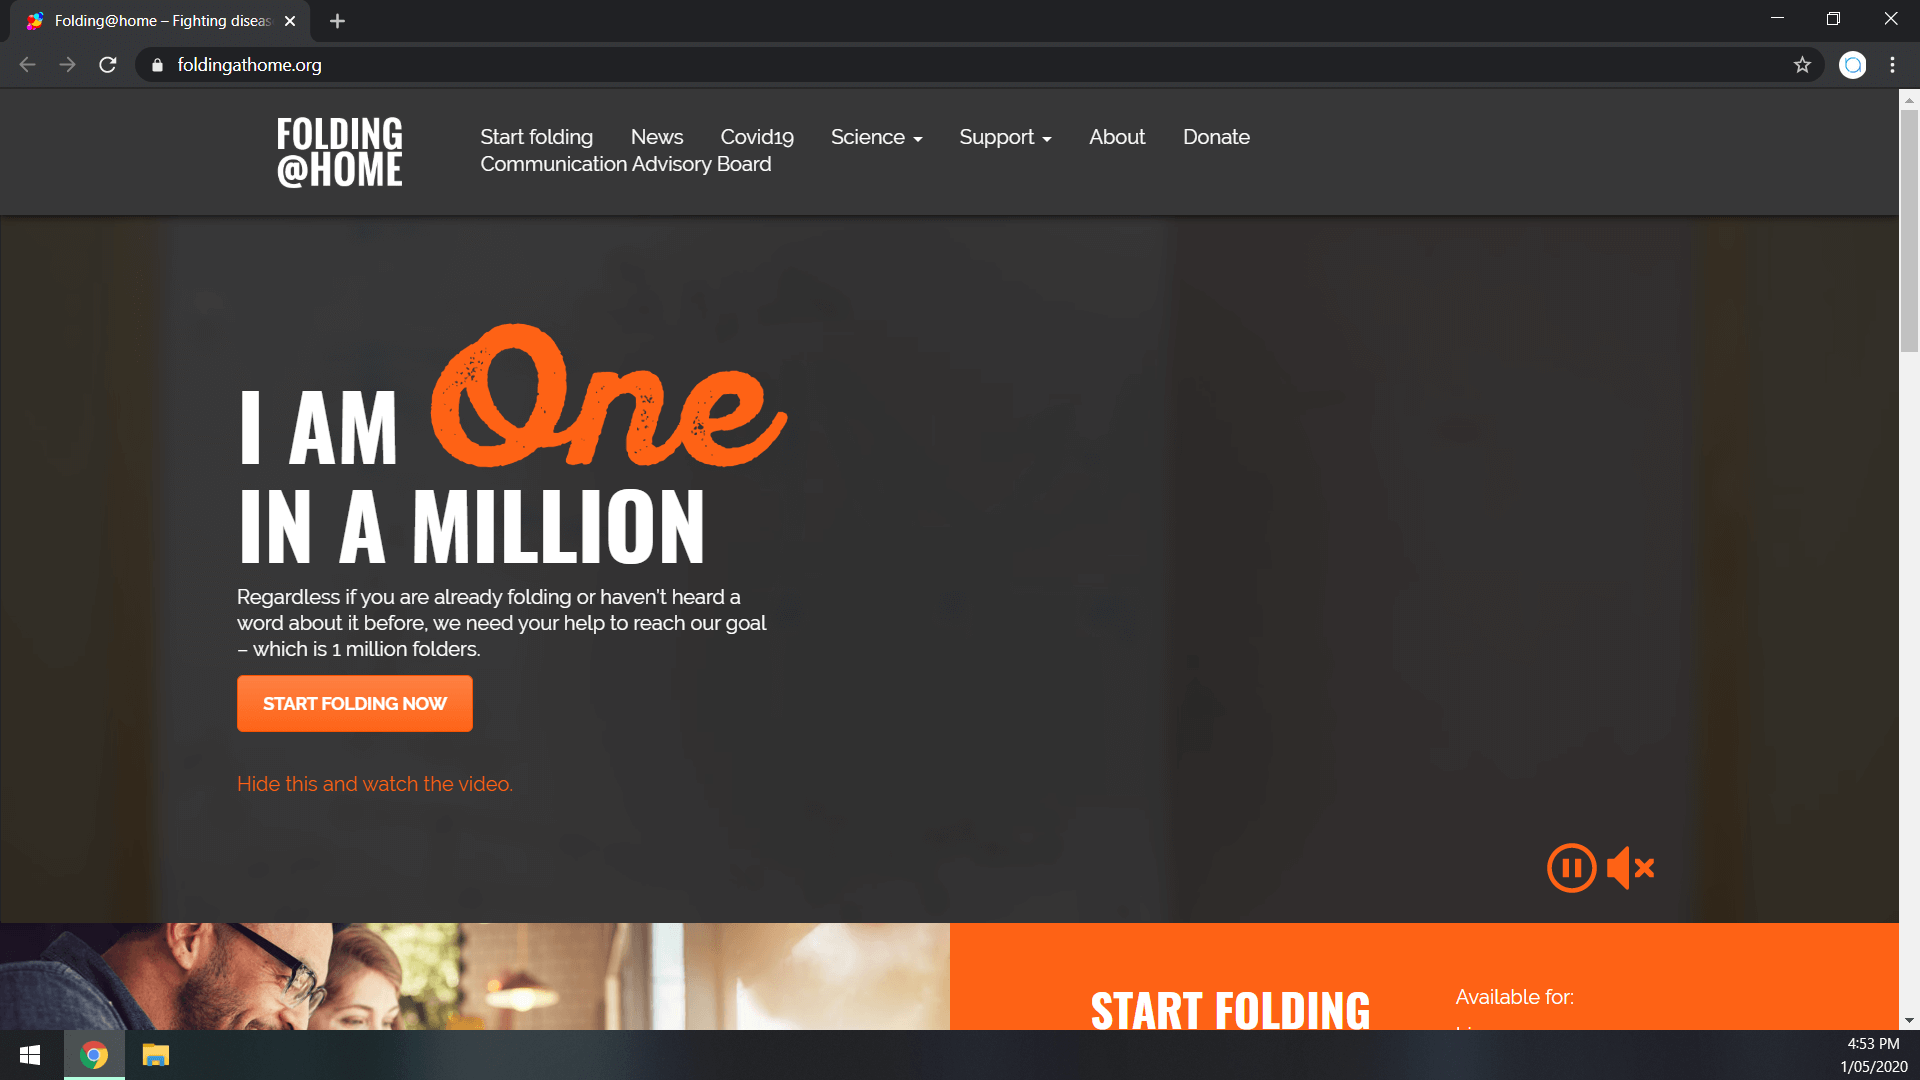 Folding at Home Home Page